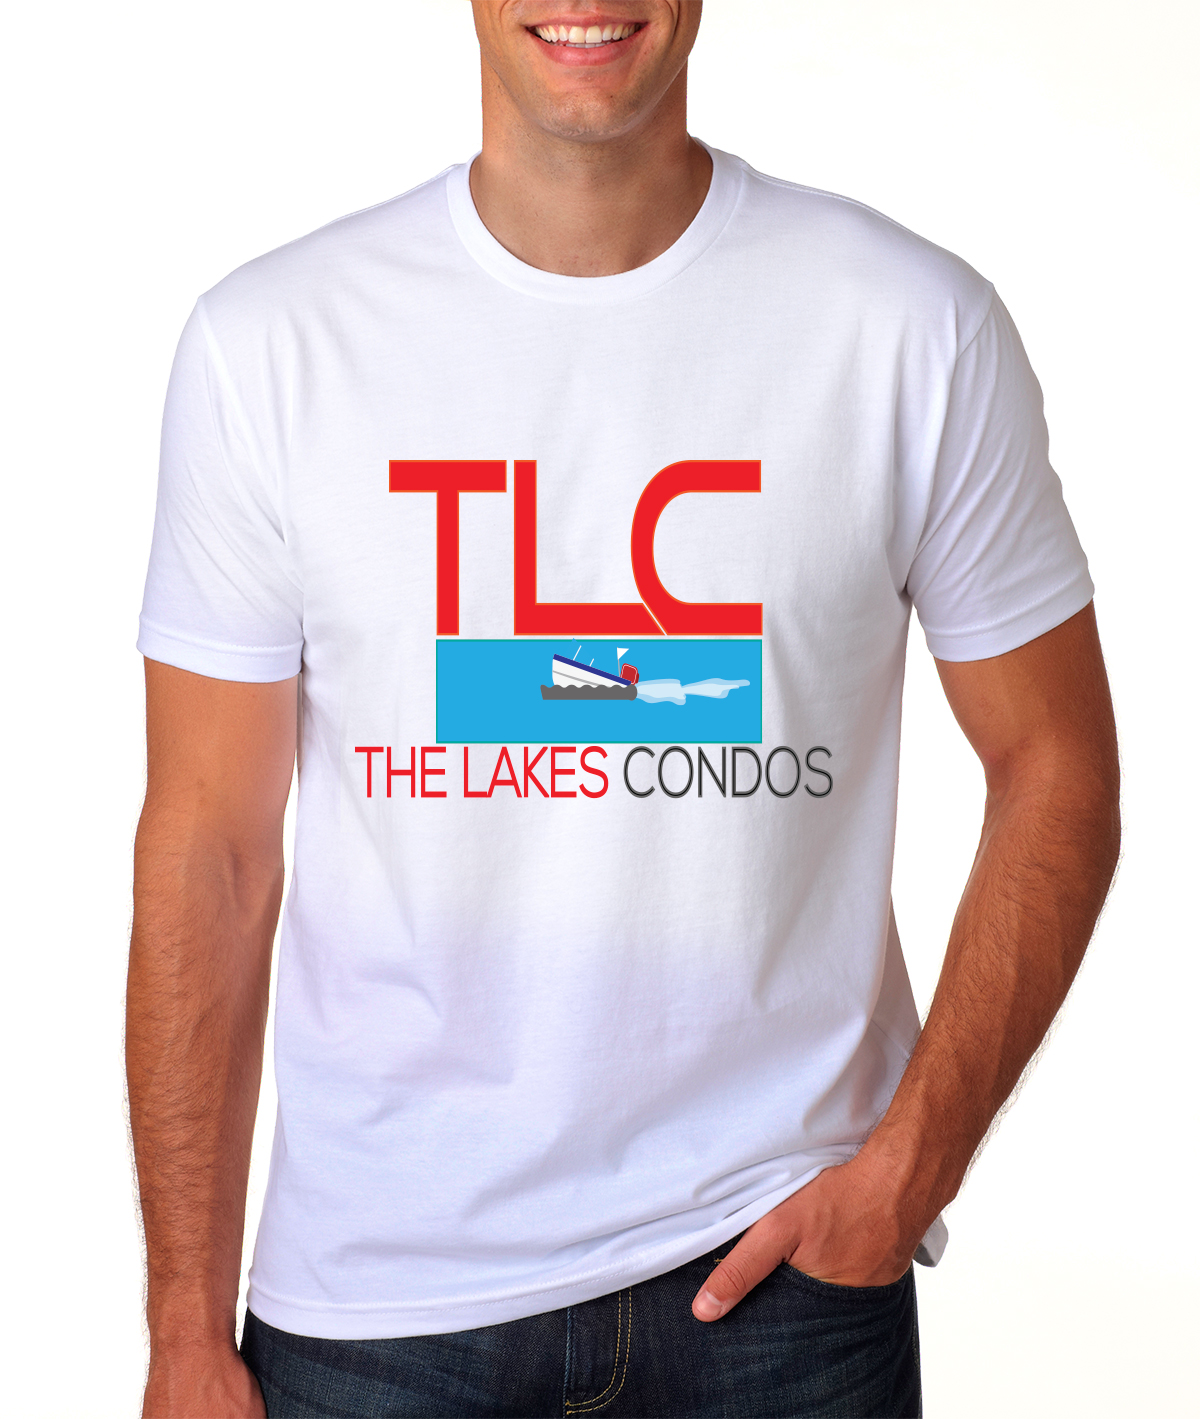 Make a Awesome Typography And Any Graphics 2 T Shirt Design